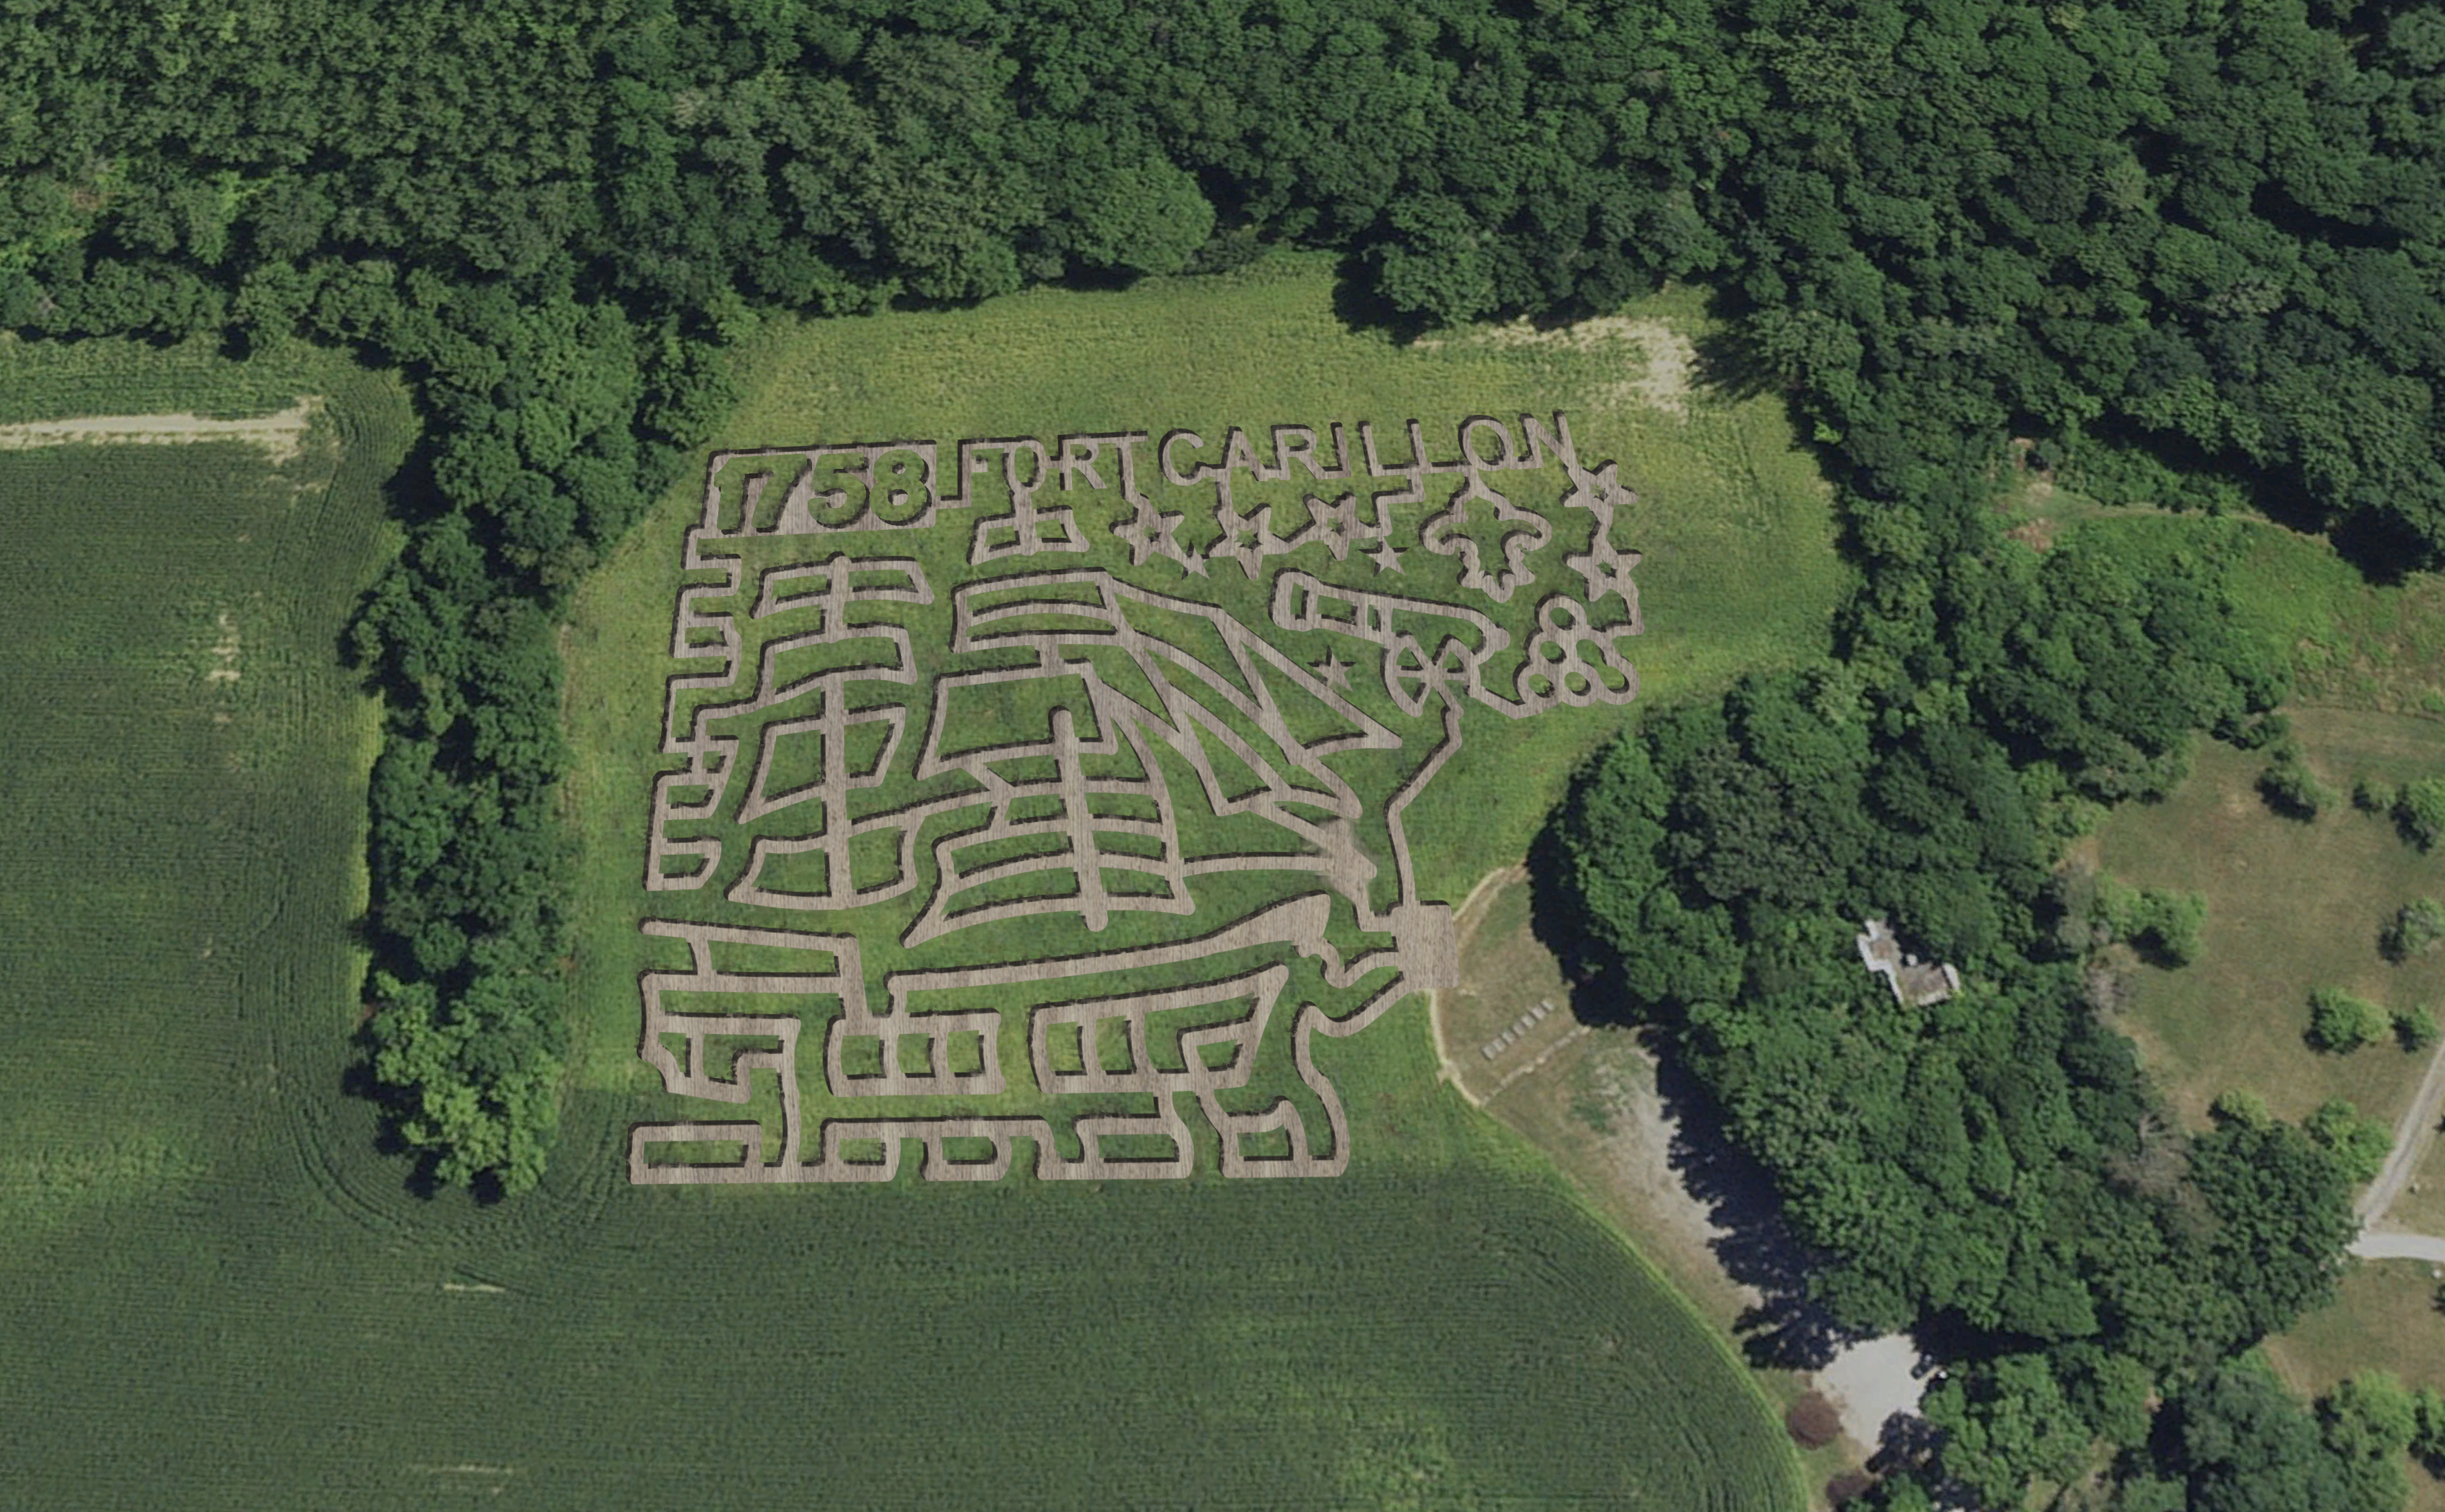 Fort Ticonderoga's heroic corn maze from the air